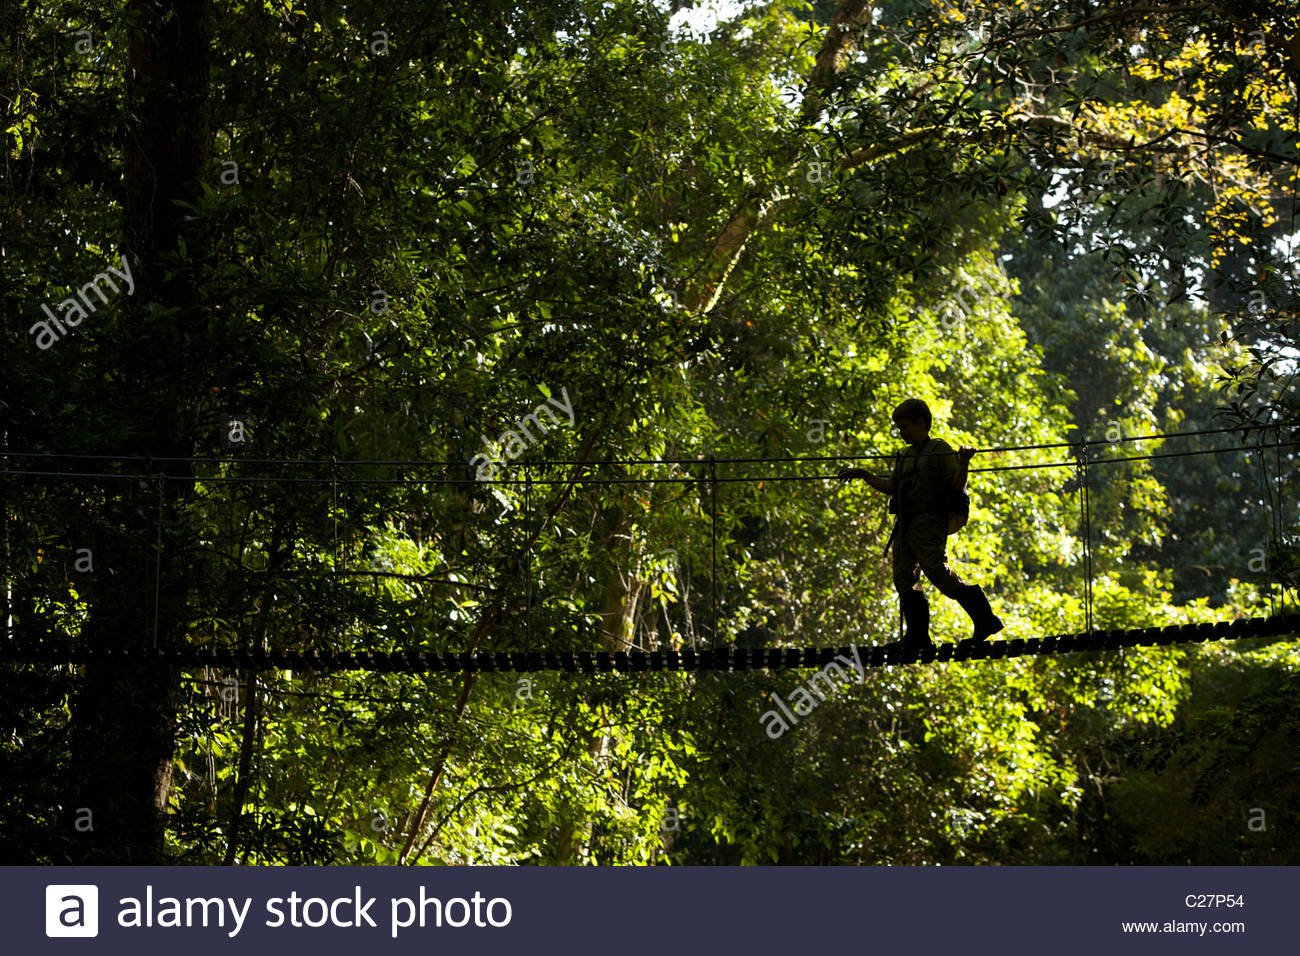 A boy crossing a suspended bridge over a river. - Stock Image